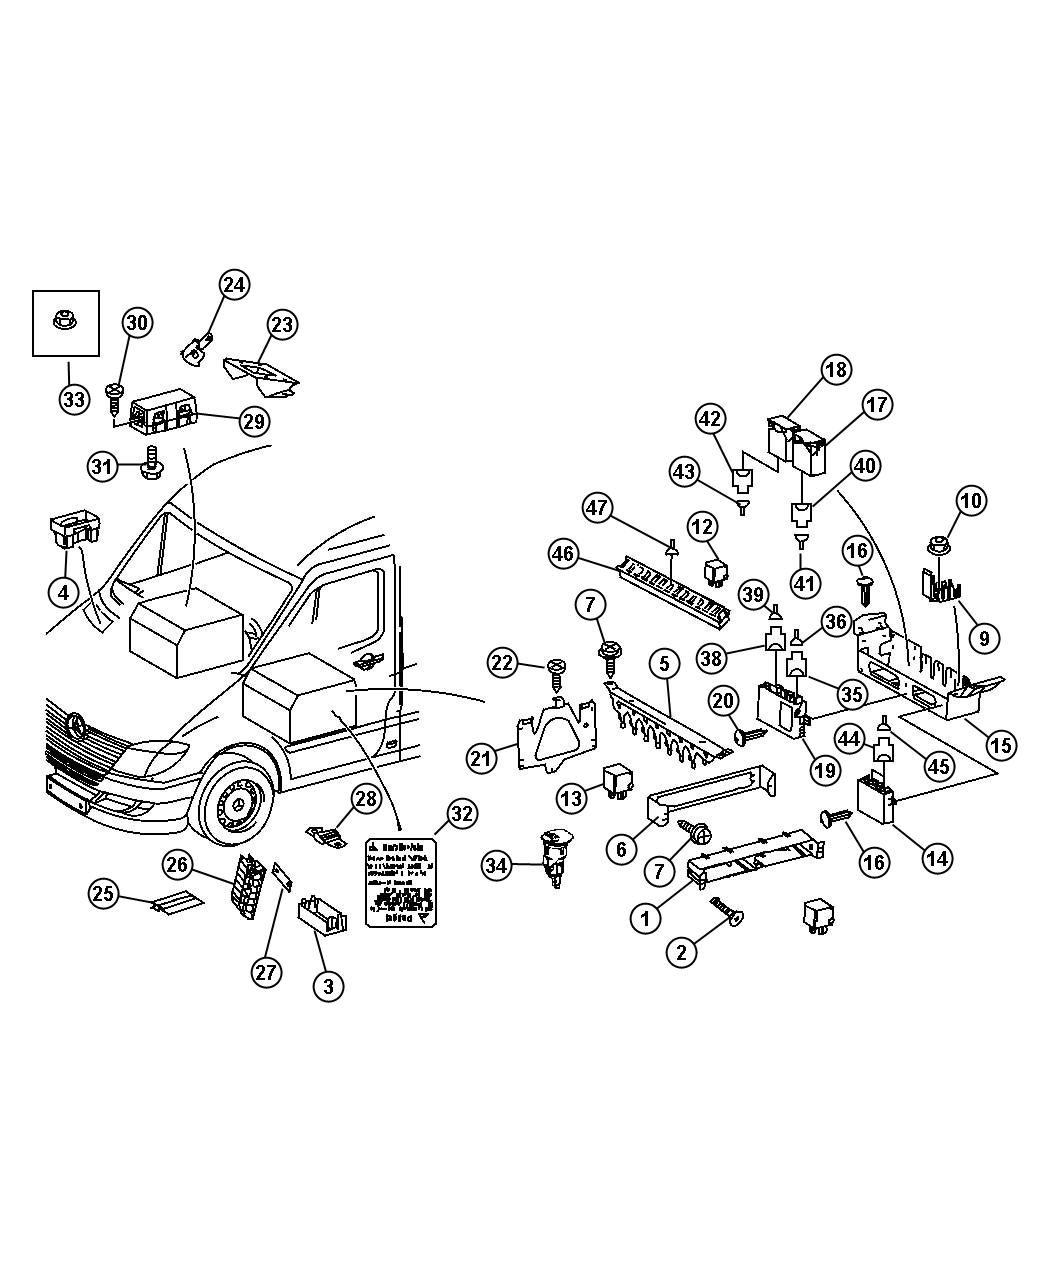 2004 chrysler sebring vacuum line diagram